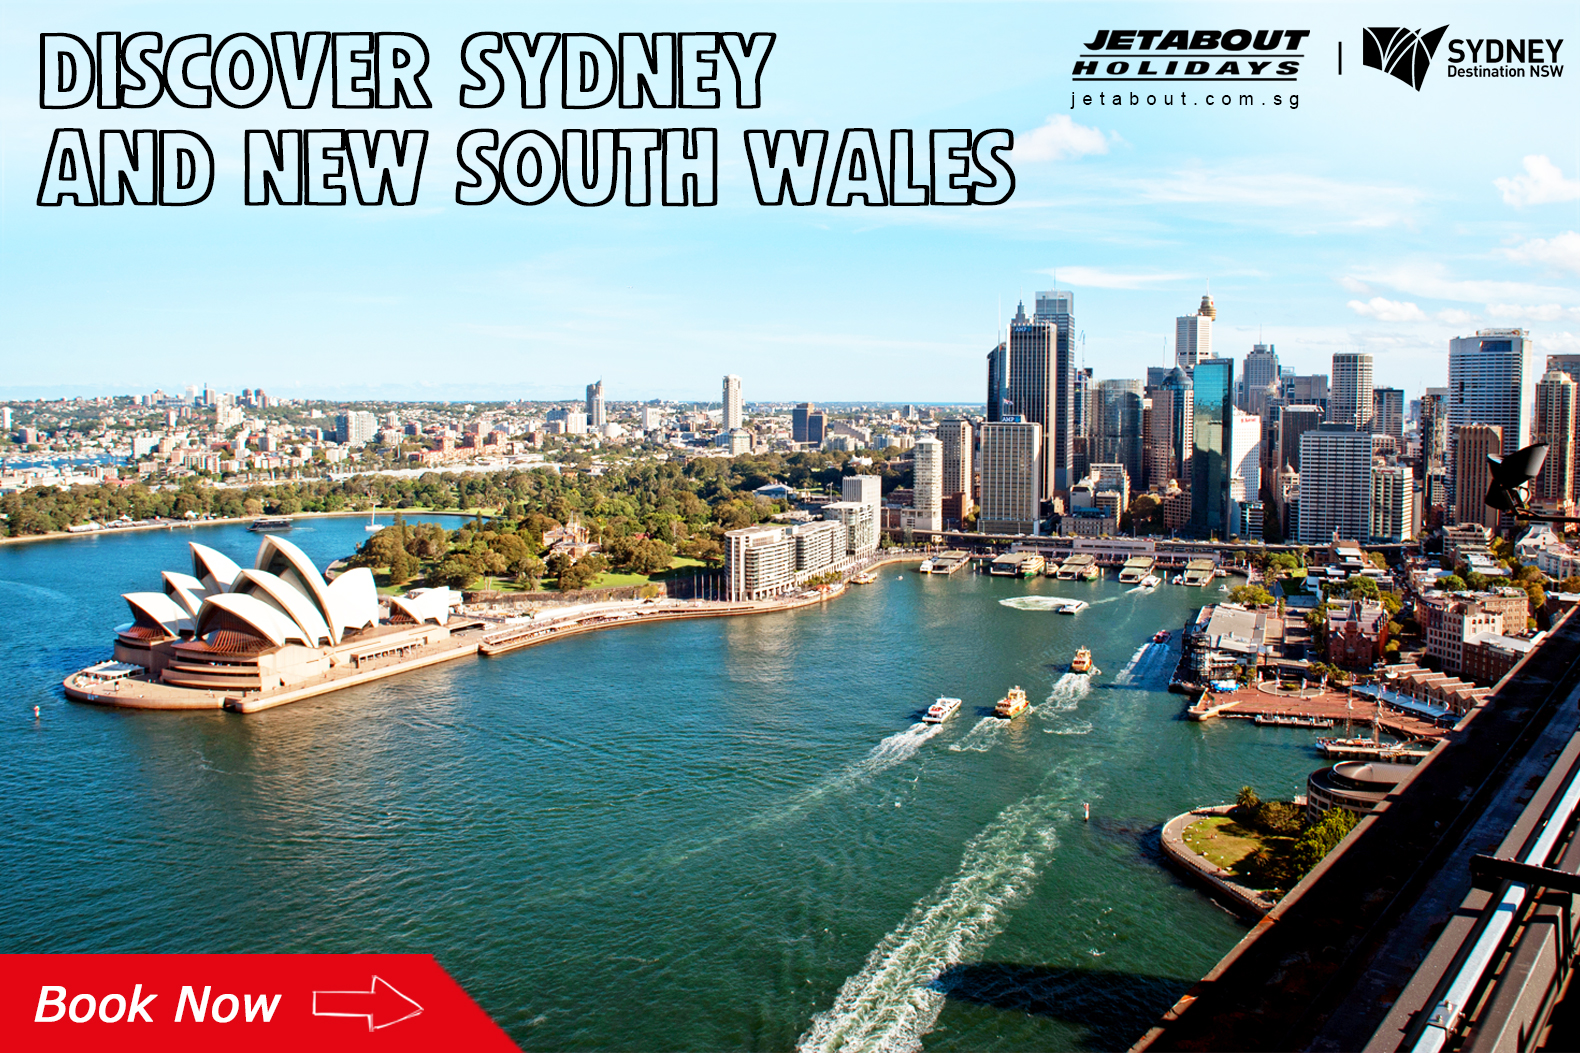 jetabout holidays sydney new south wales tour